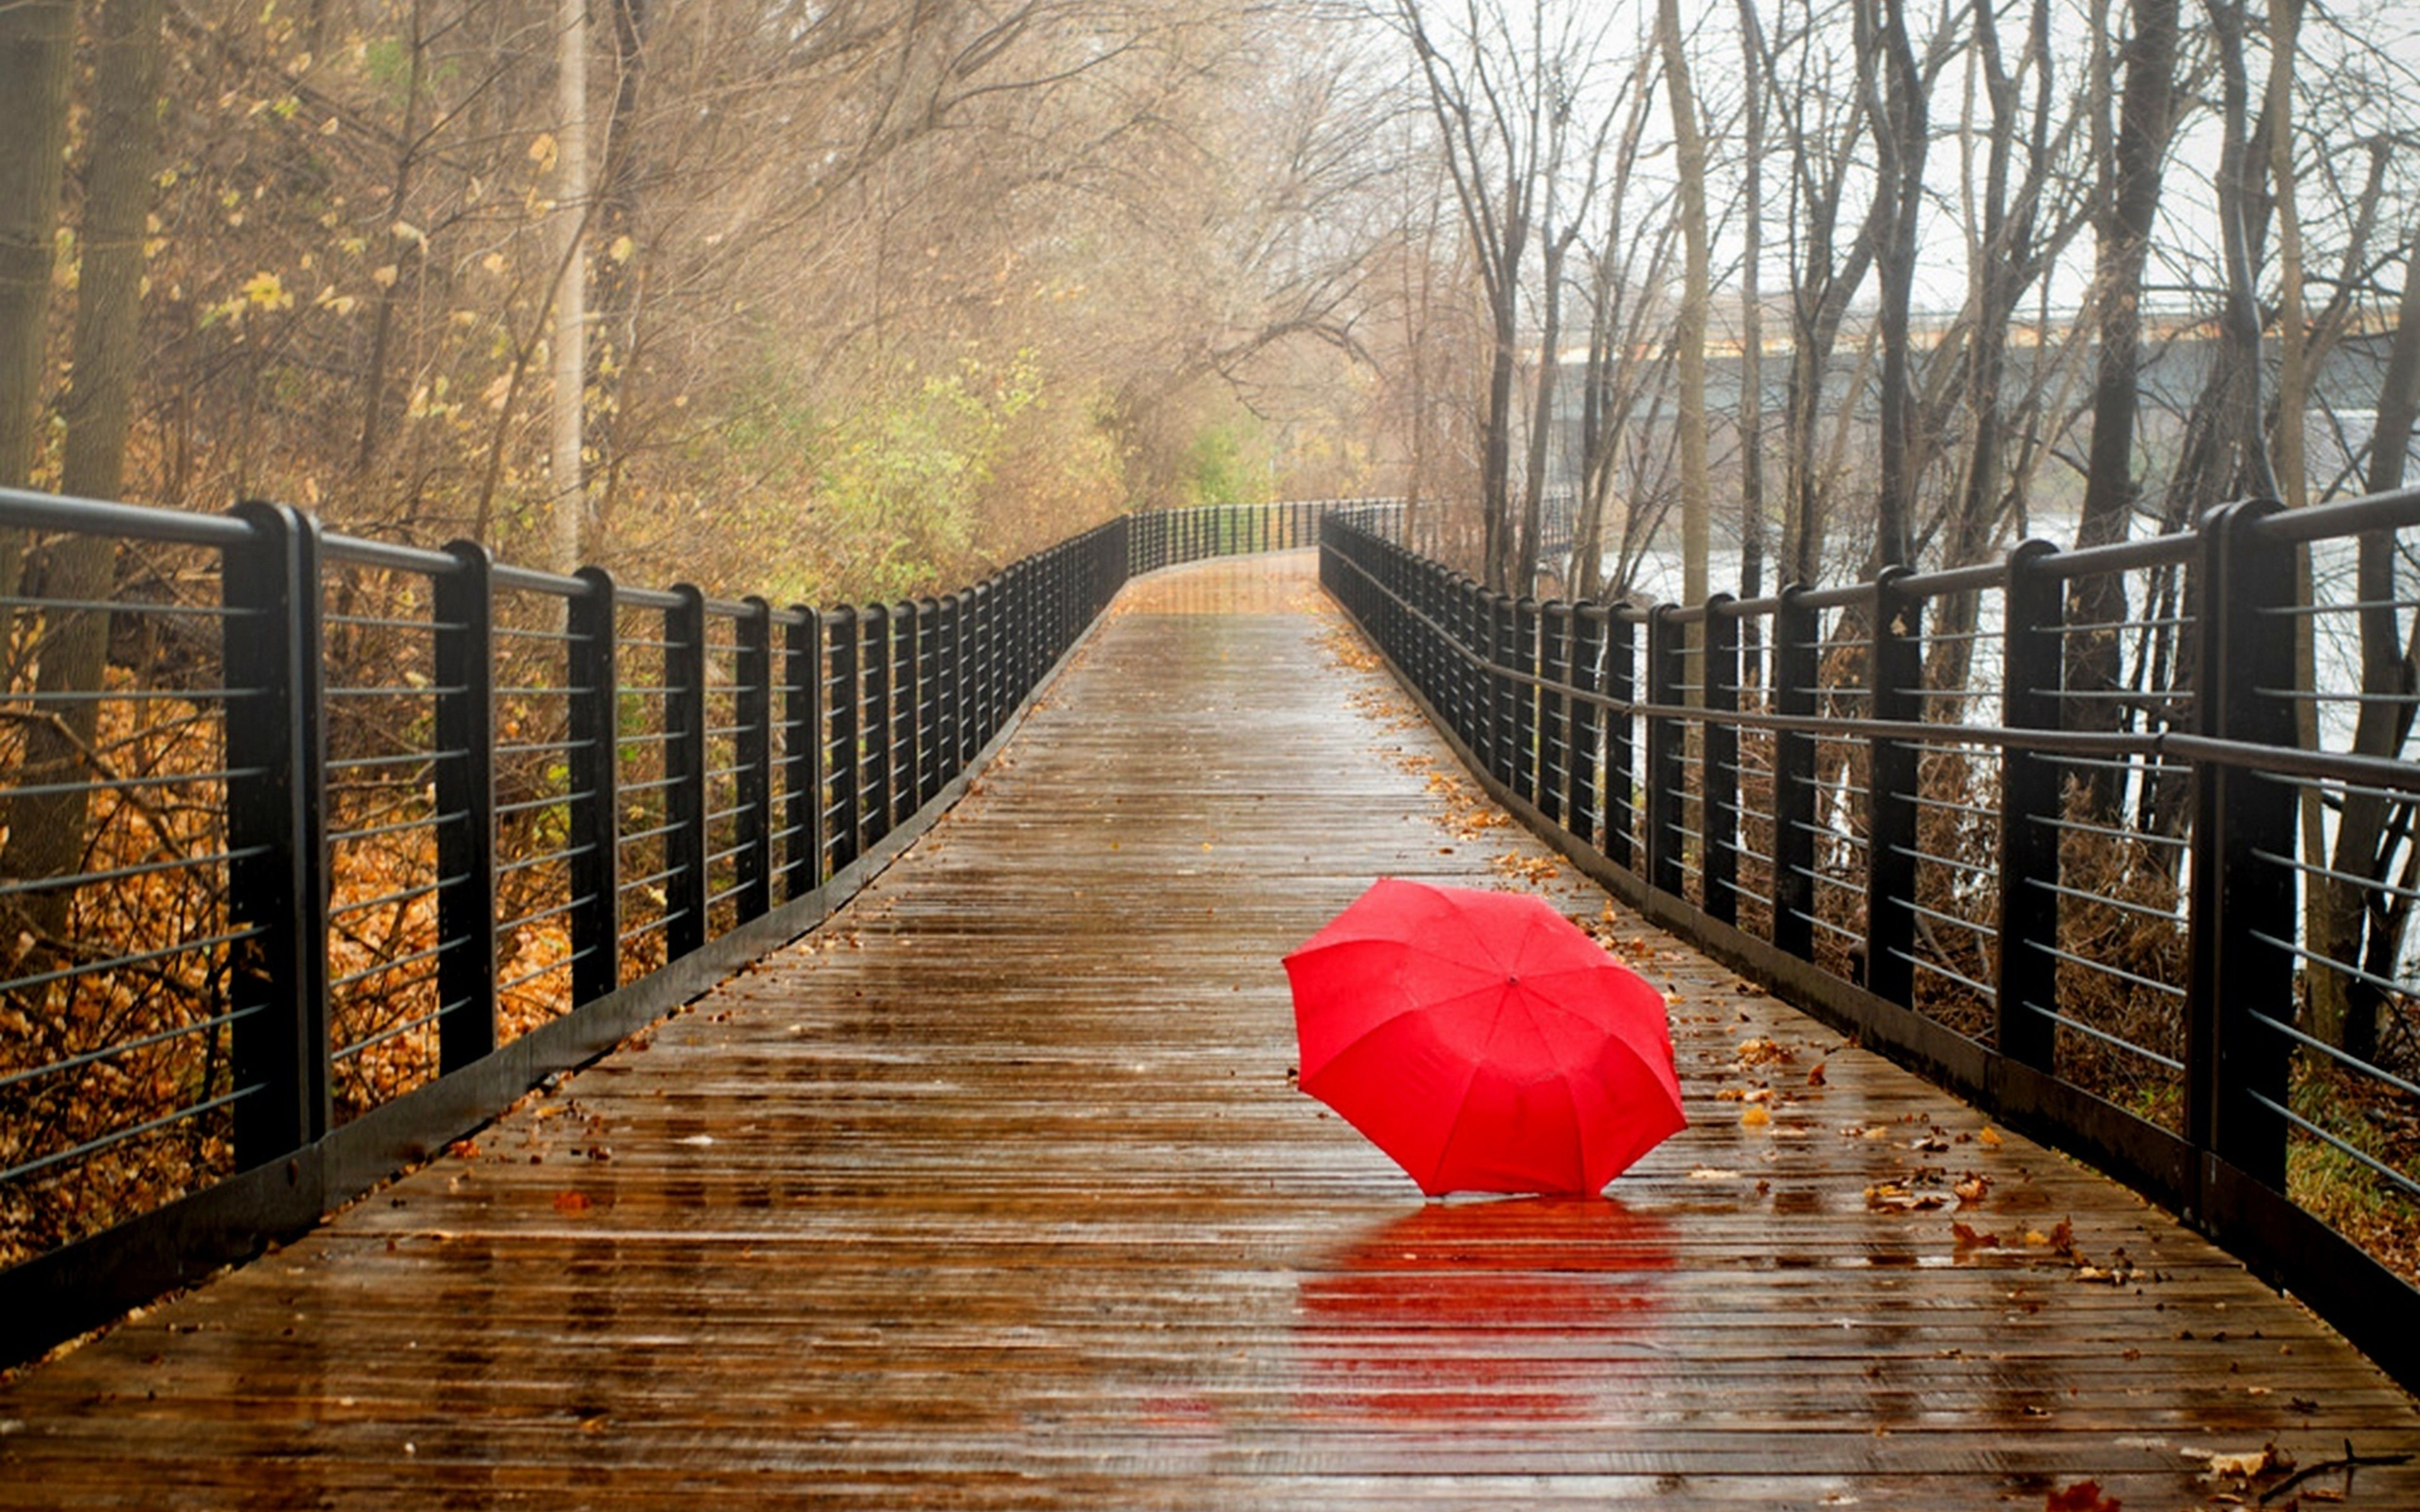 Rain over gray city - two girl with red umbrellas | Red ...